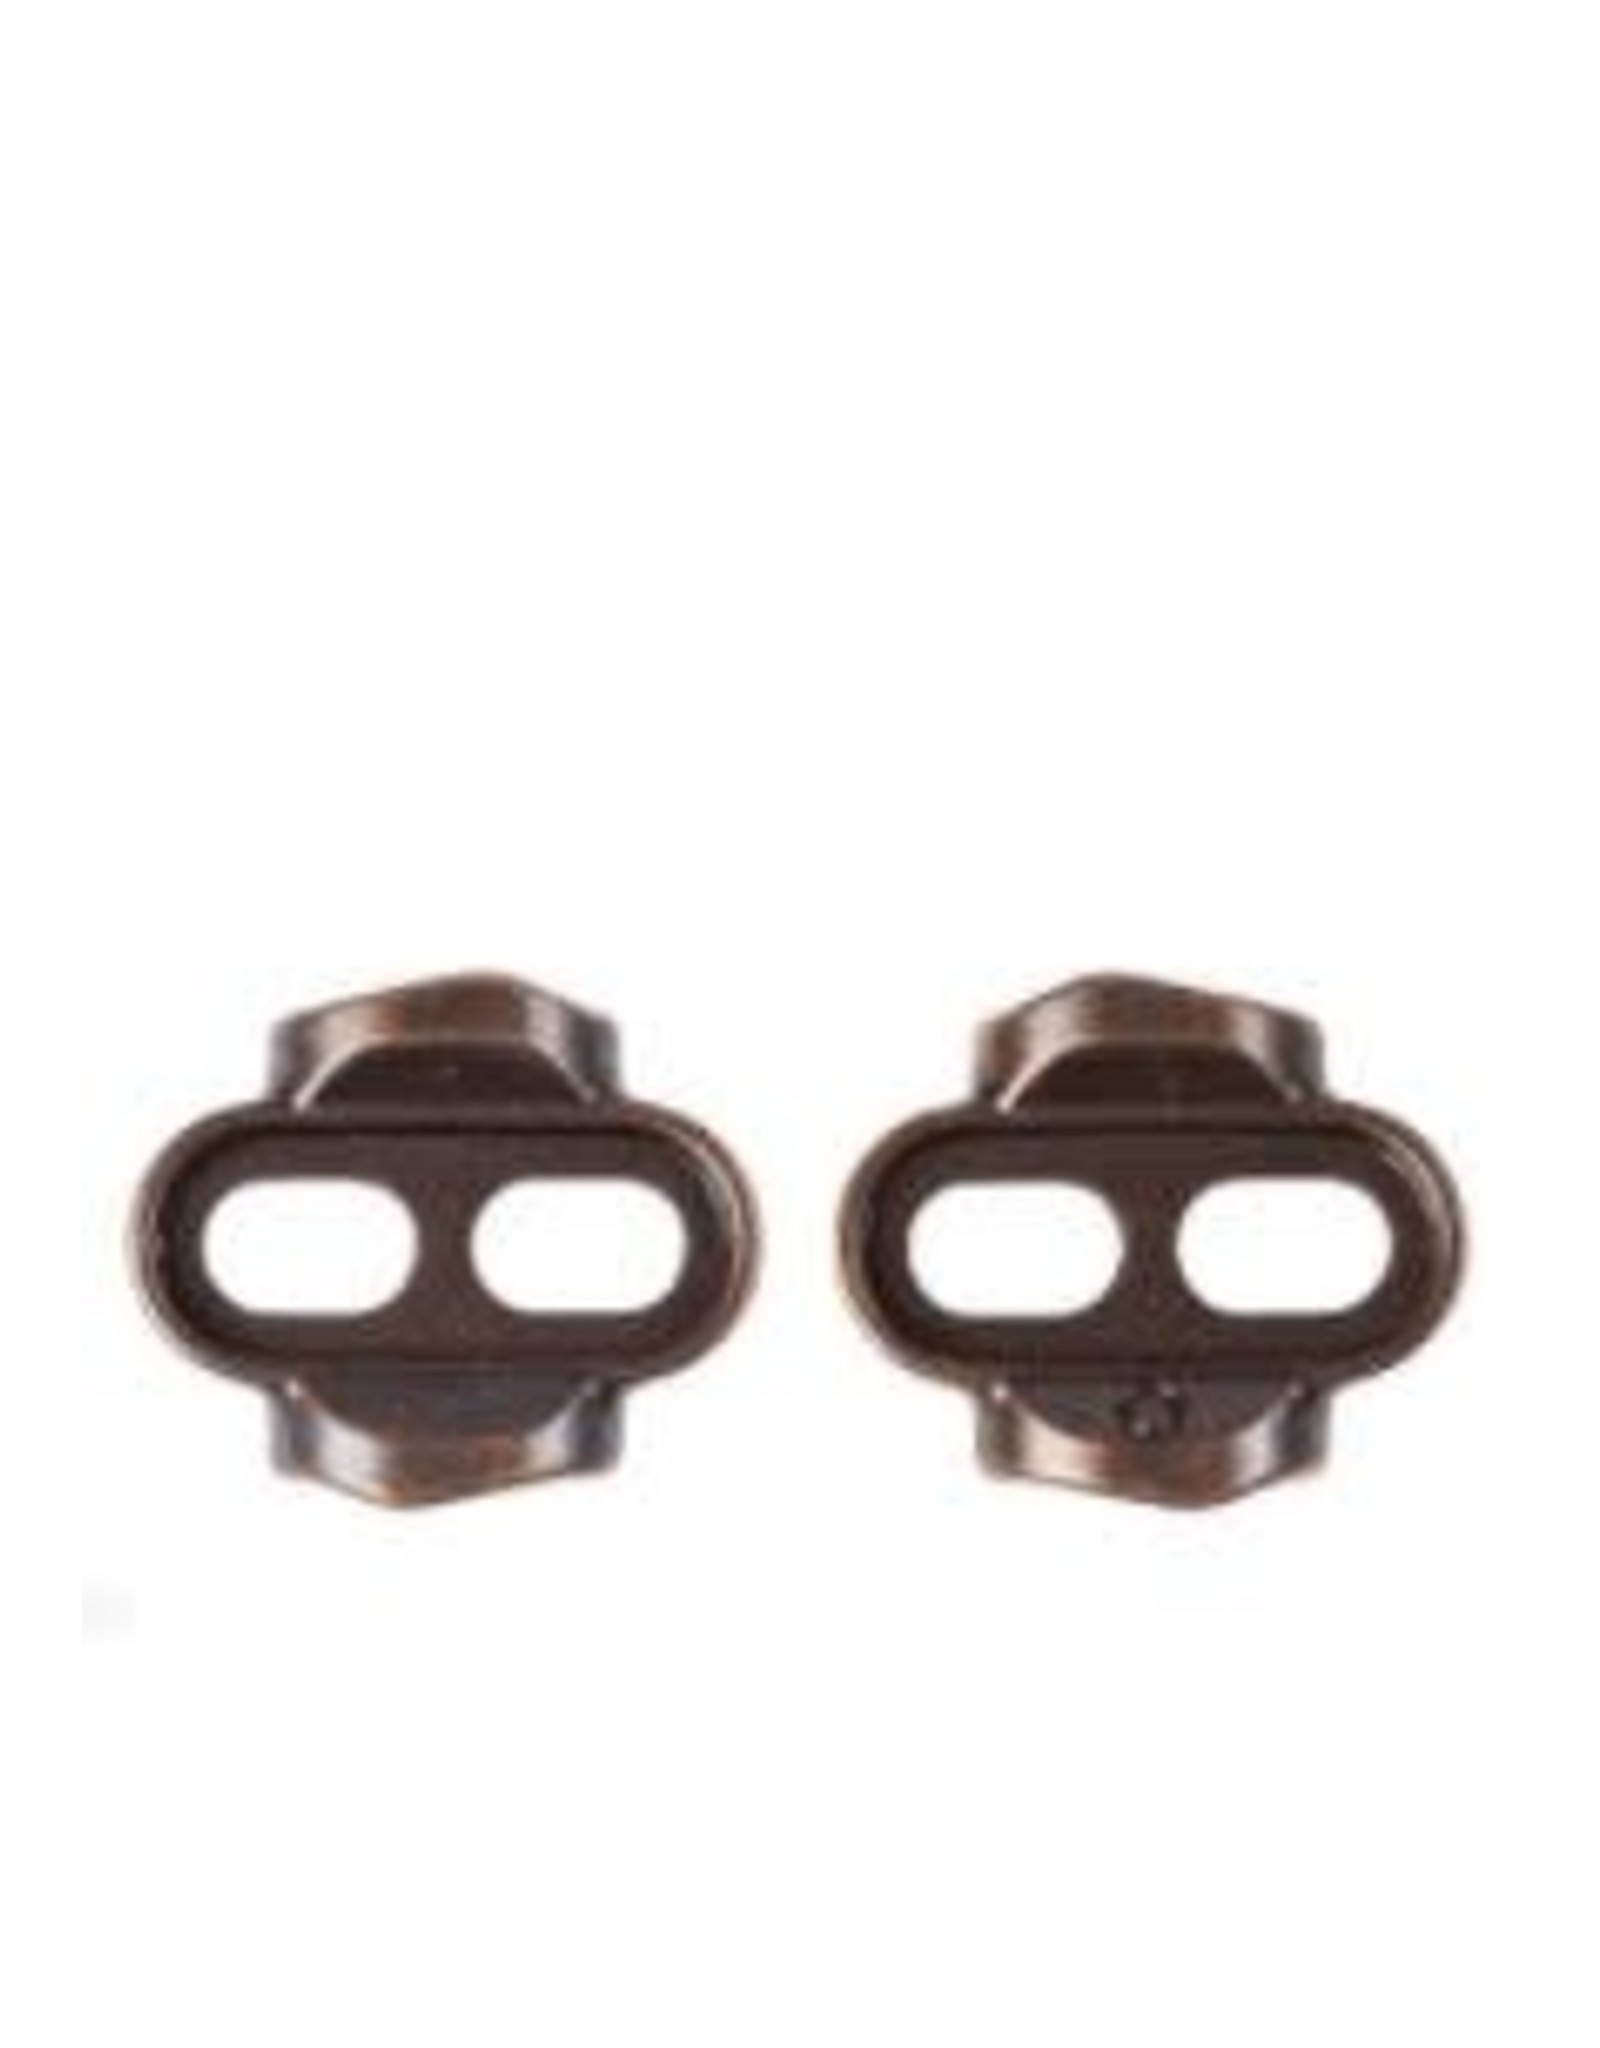 Crank Brothers Cales Crank Brothers easy release